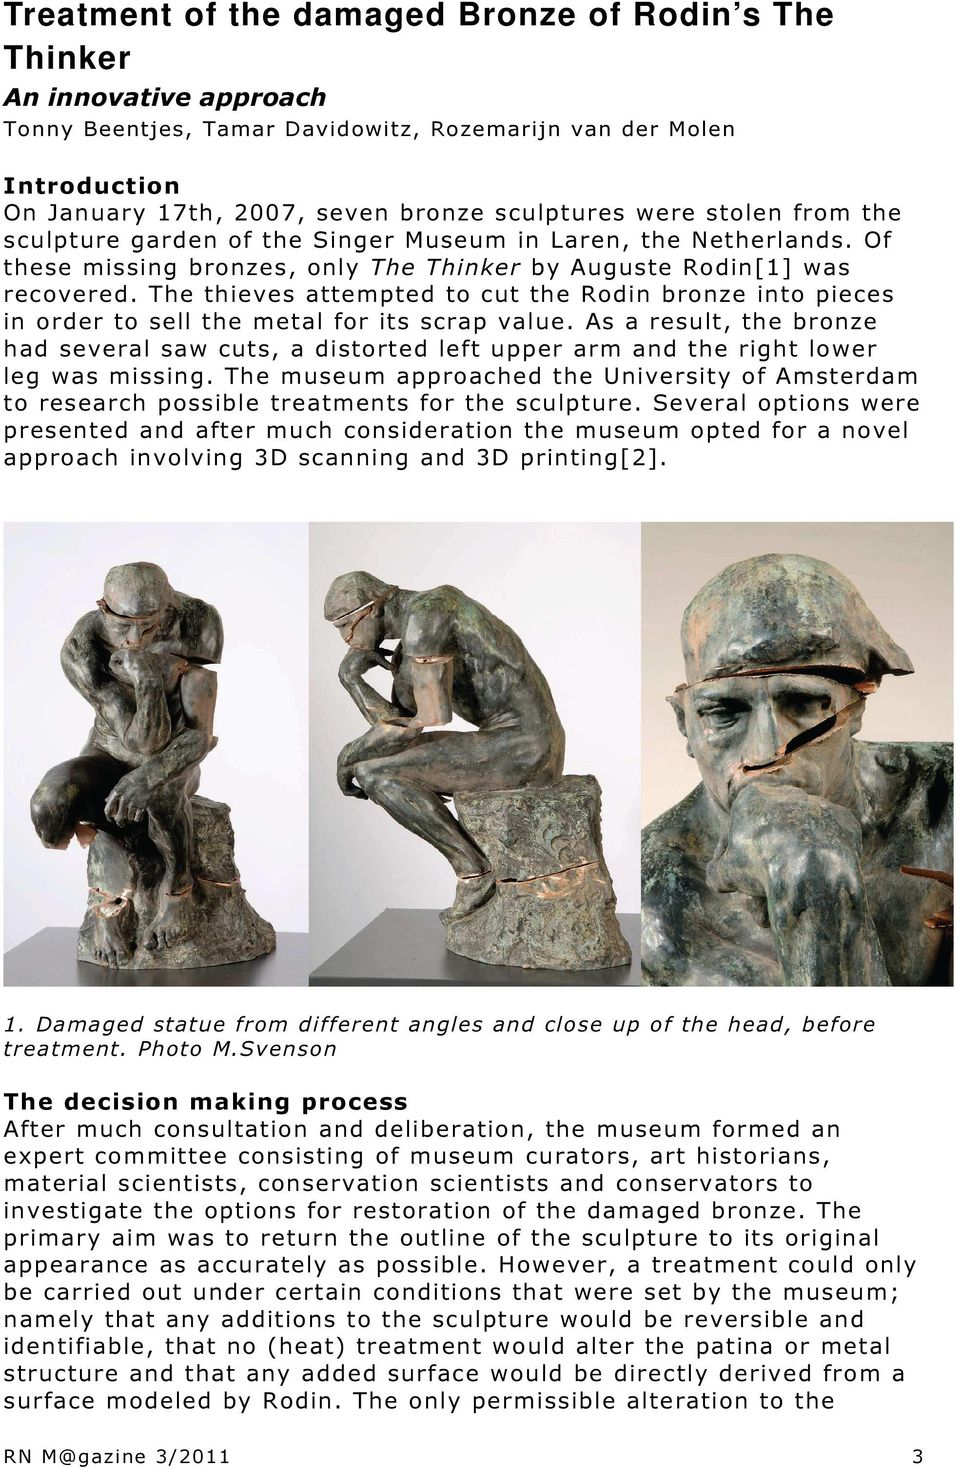 The thieves attempted to cut the Rodin bronze into pieces in order to sell the metal for its scrap value.